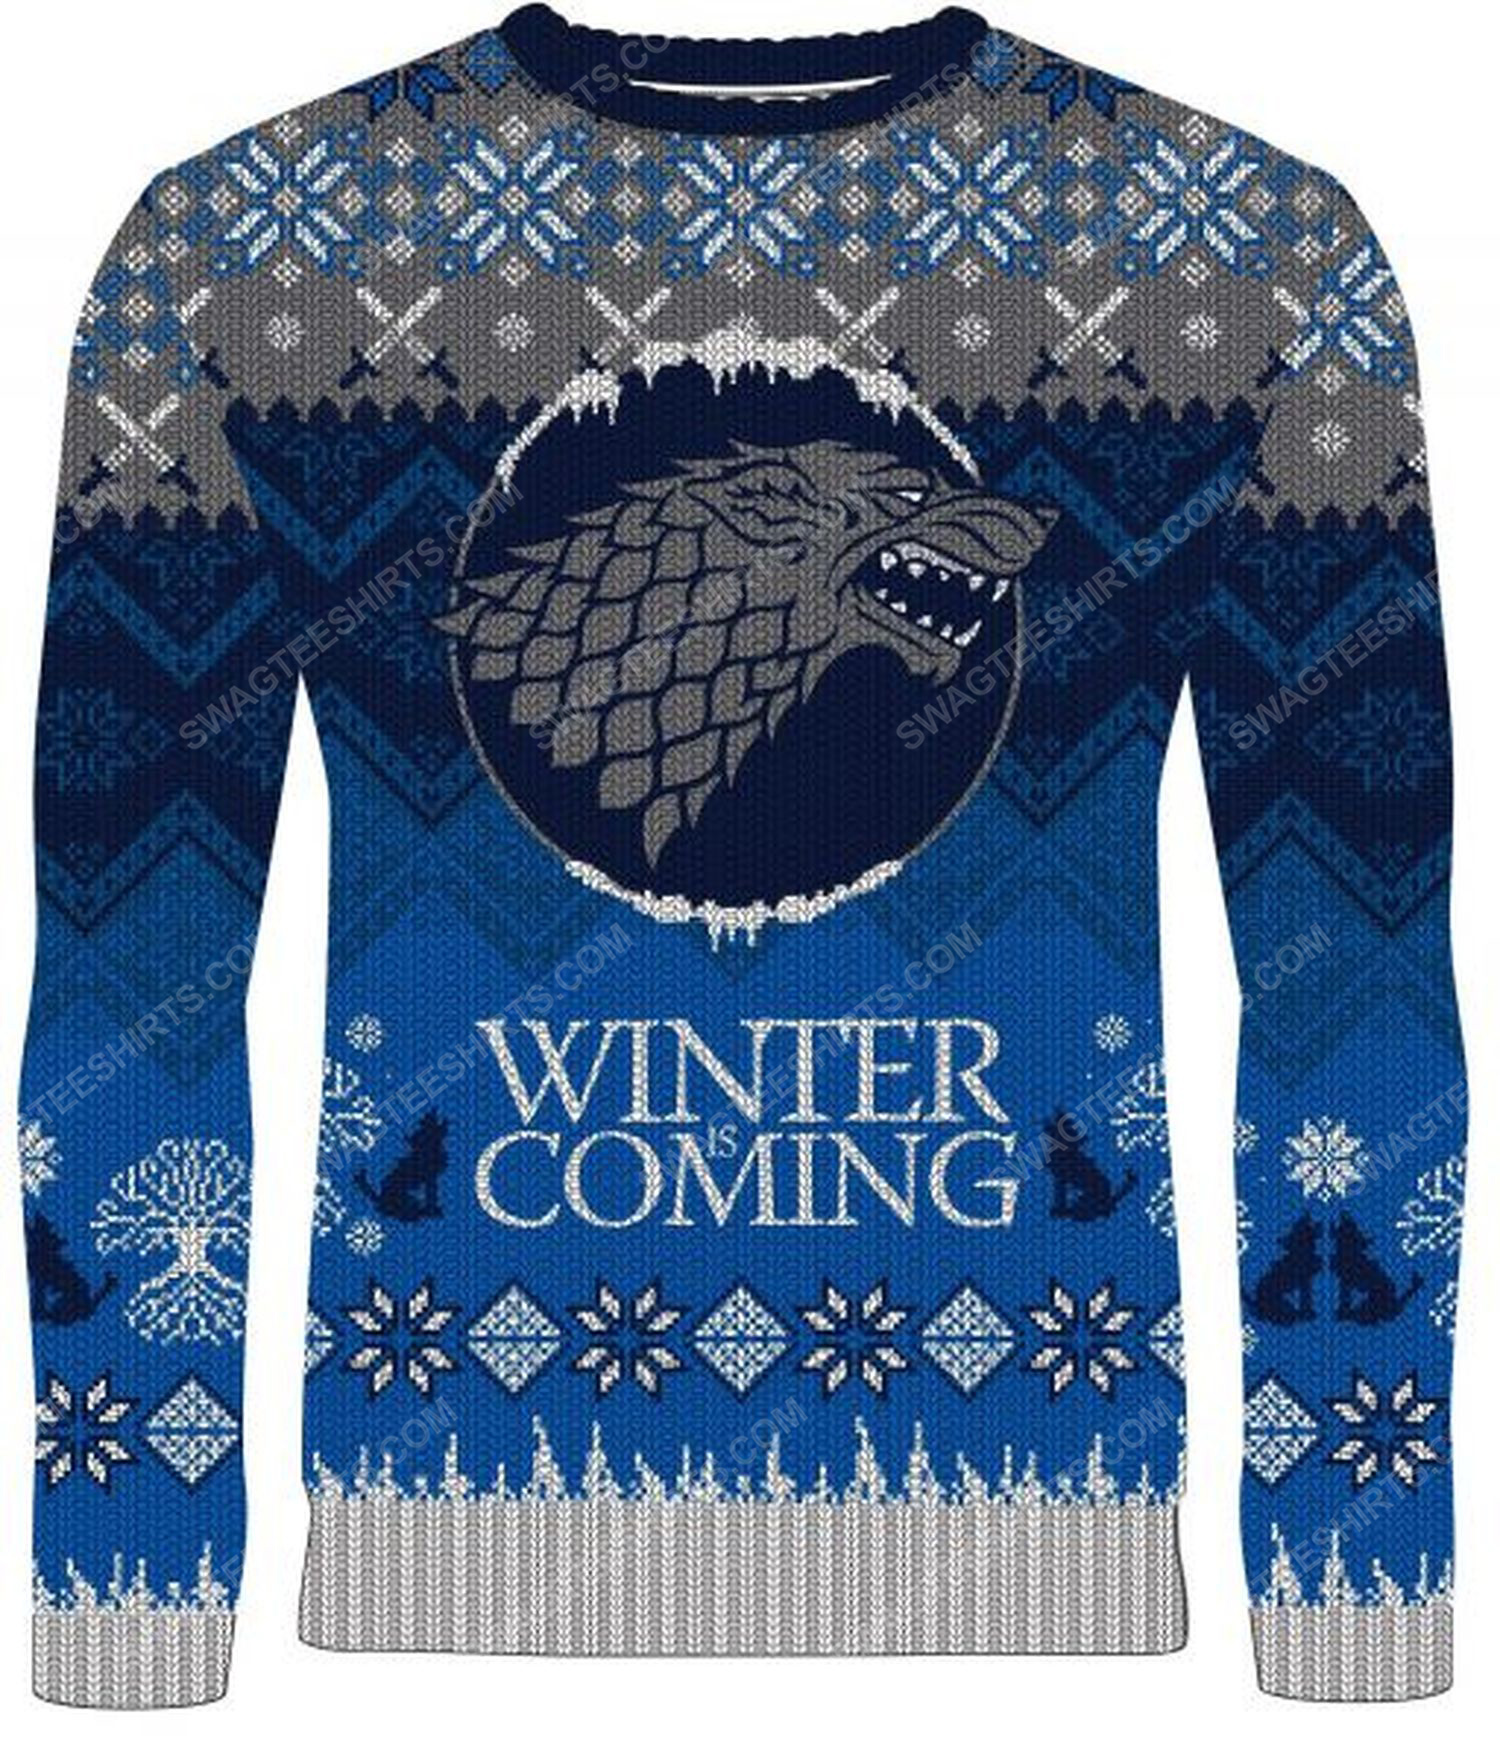 Game of thrones winter is coming stark full print ugly christmas sweater